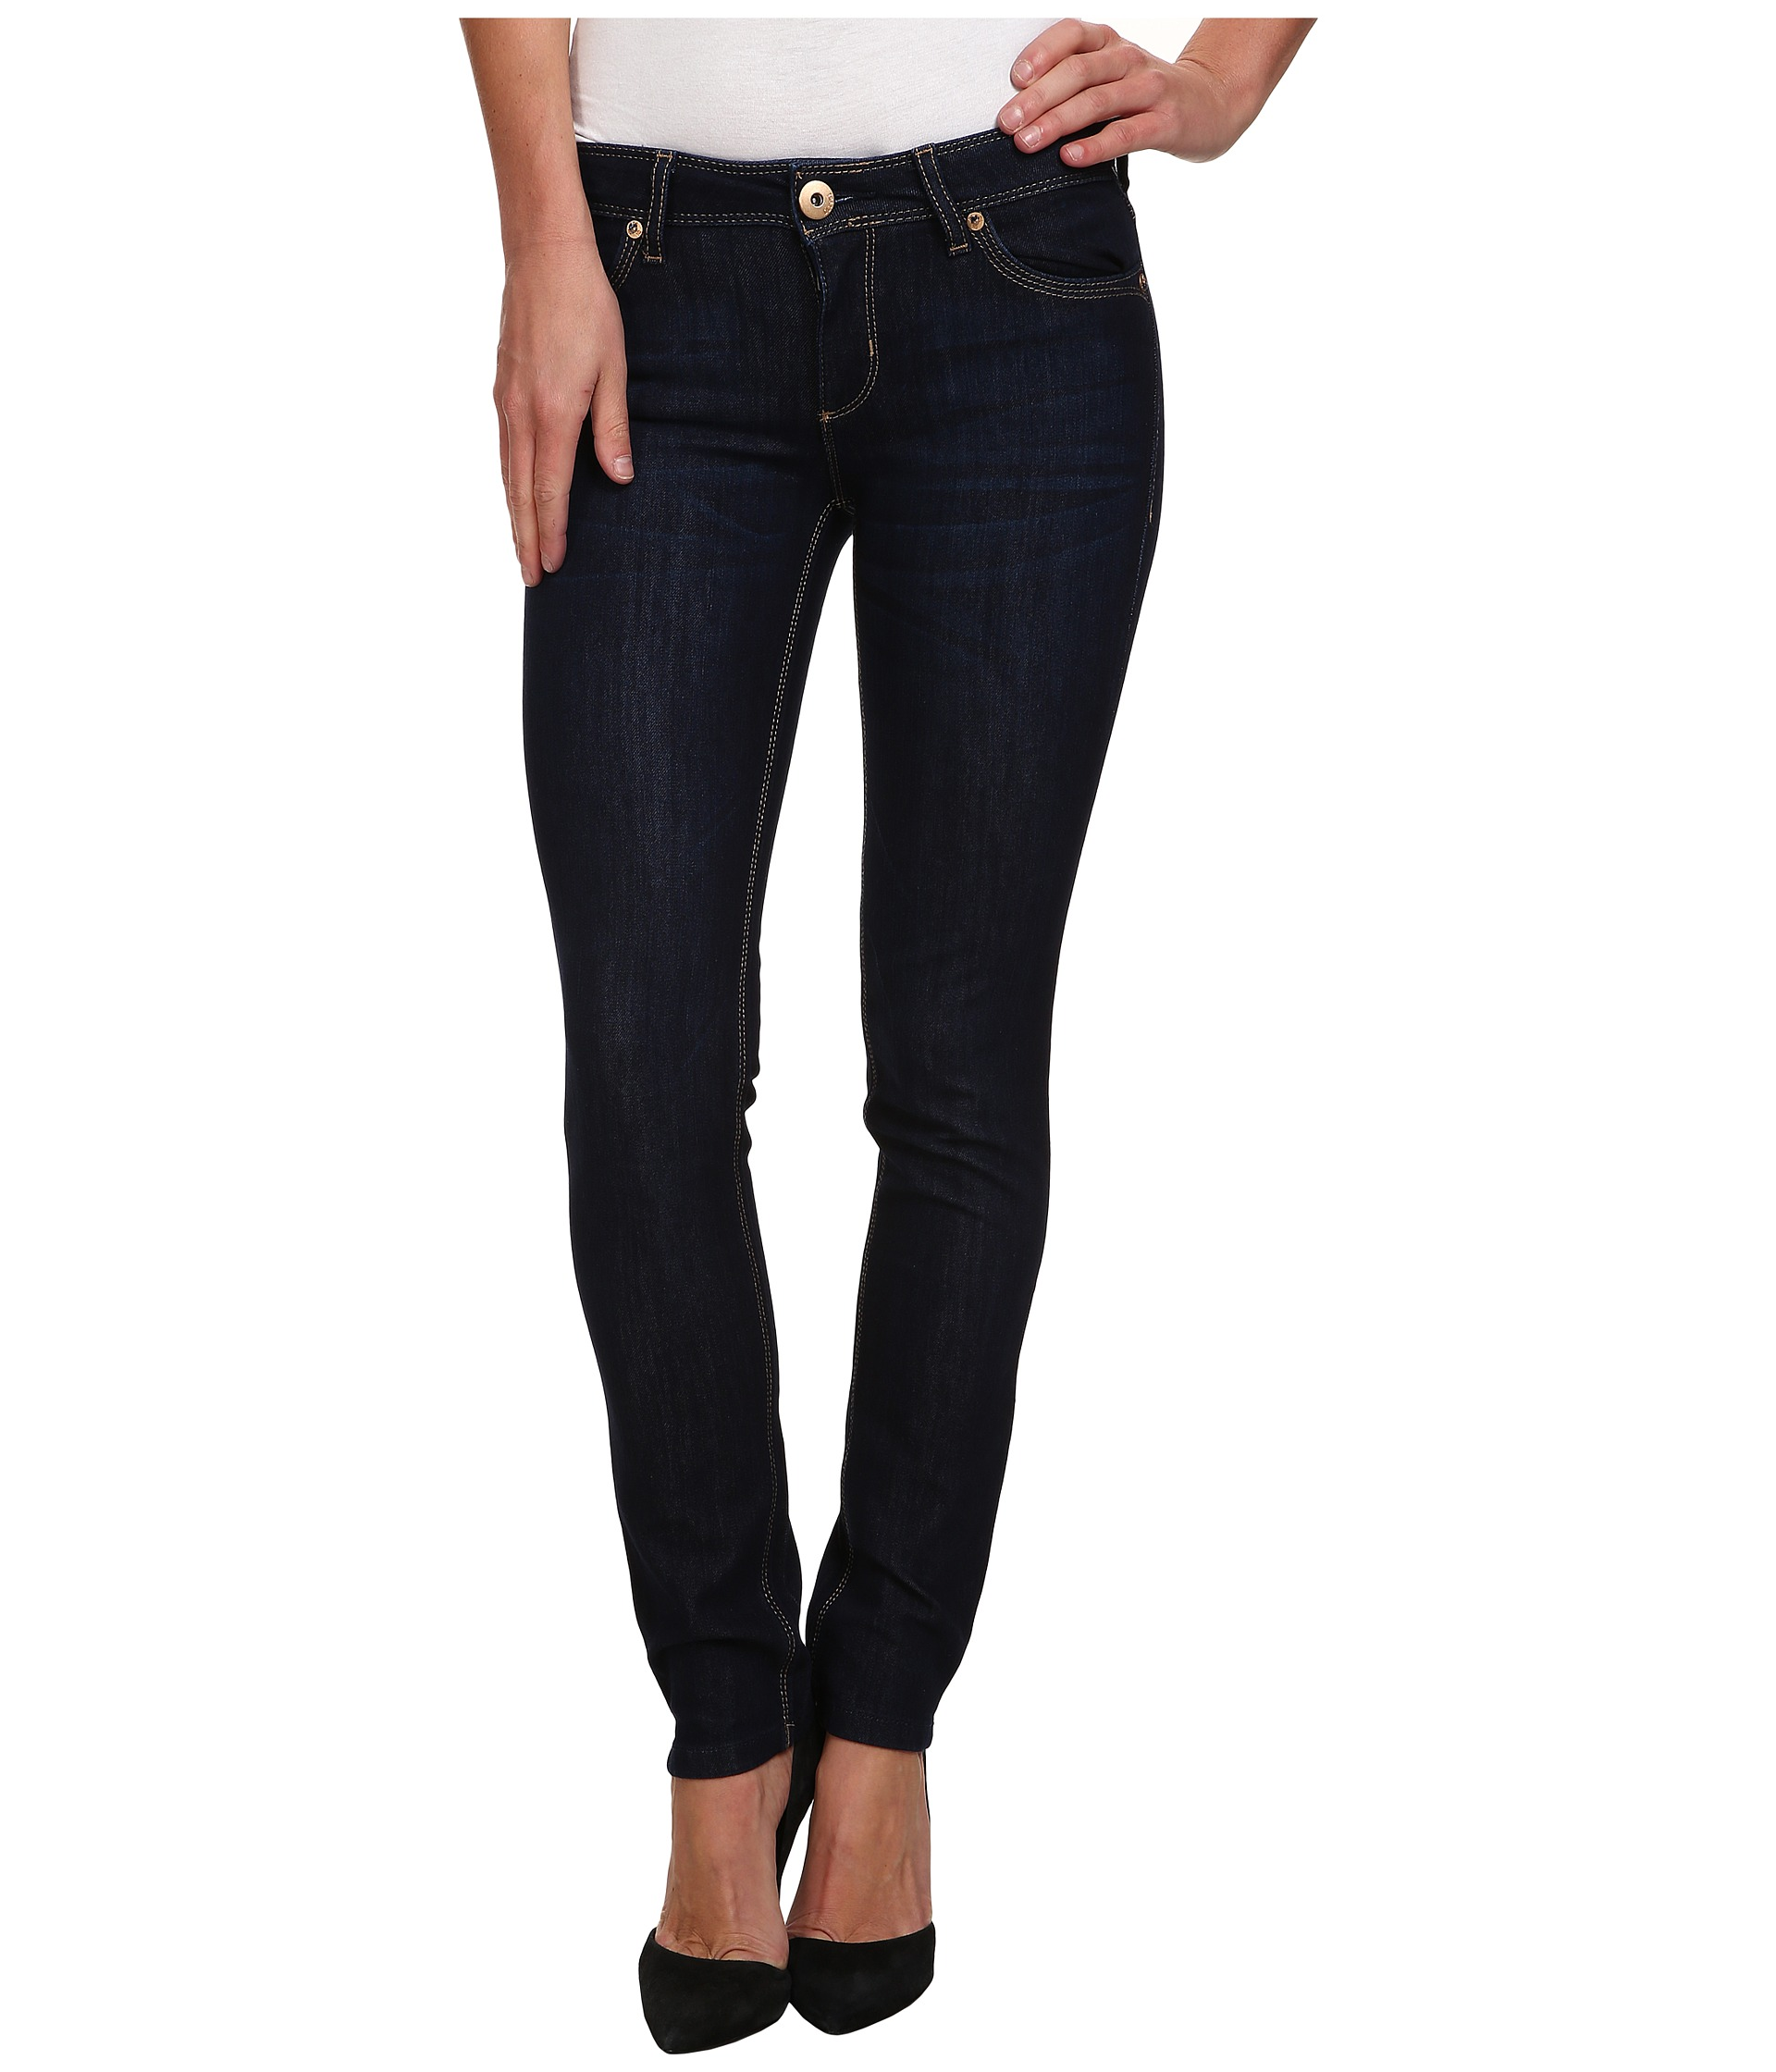 Jeans & Denim: Free Shipping on orders over $45 at maintainseveral.ml - Your Online Jeans & Denim Store! Get 5% in rewards with Club O!